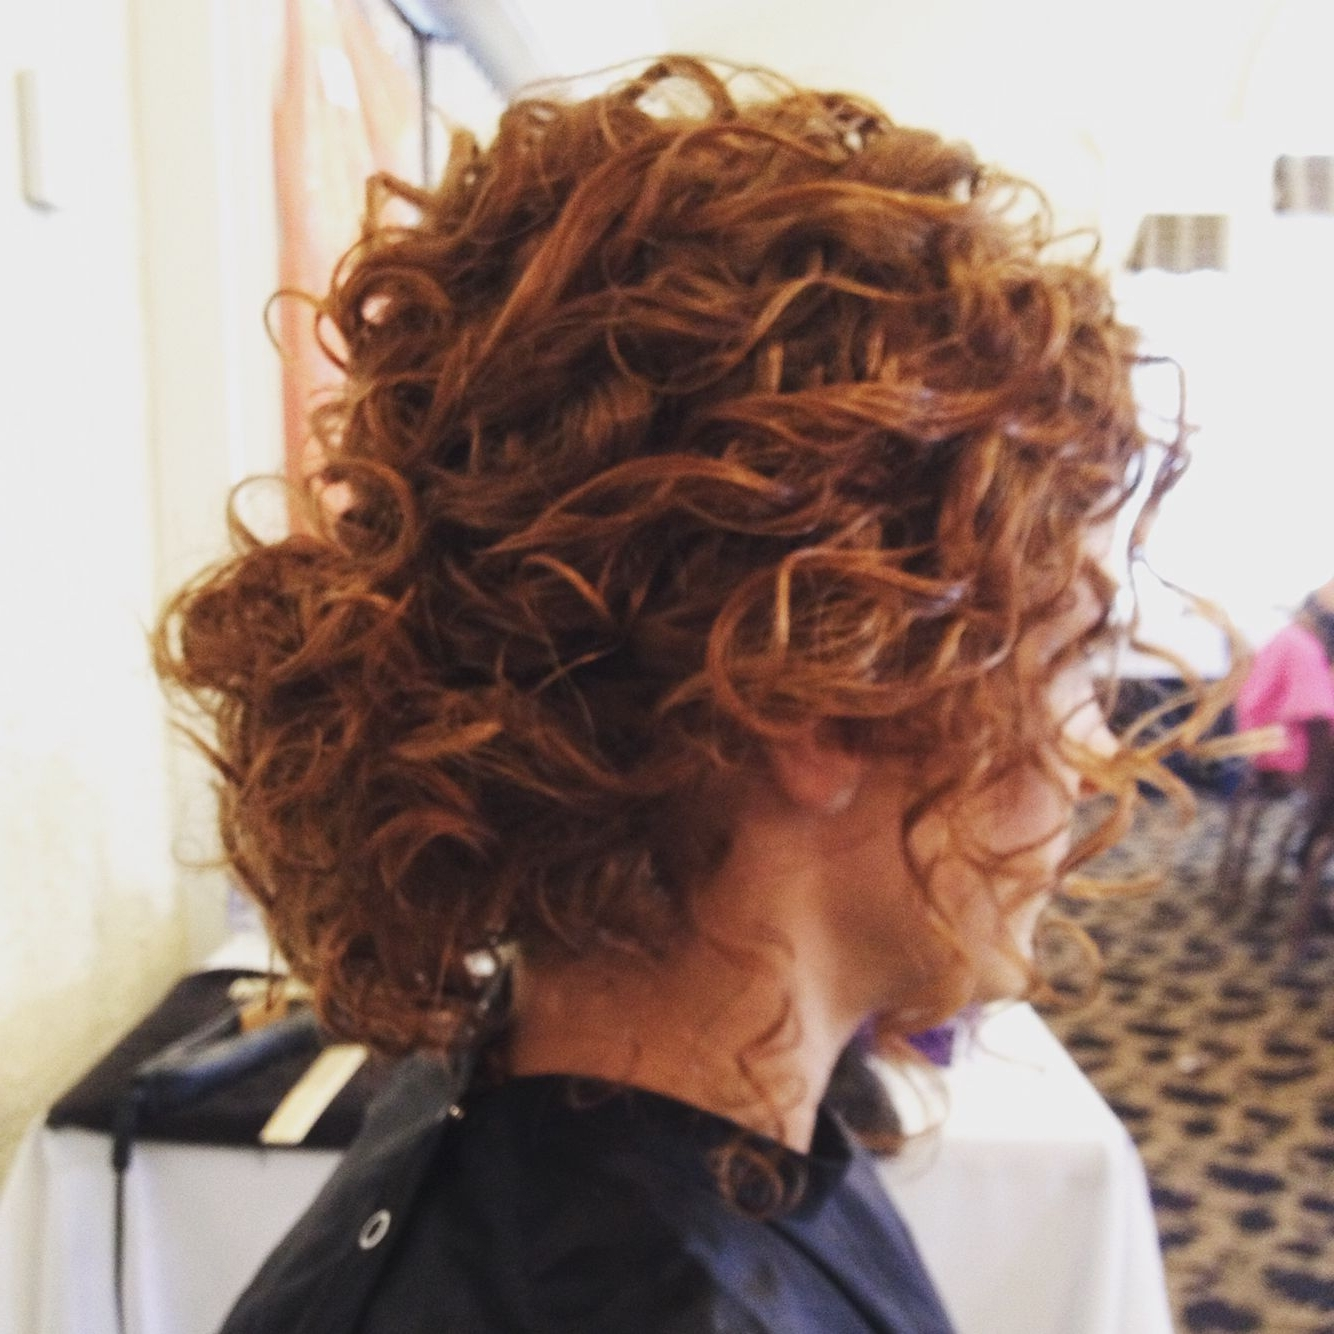 Naturally Curly Hair Low Bun Updo | Hair | Pinterest | Low Bun Updo Intended For Natural Curly Updo Hairstyles (View 2 of 15)